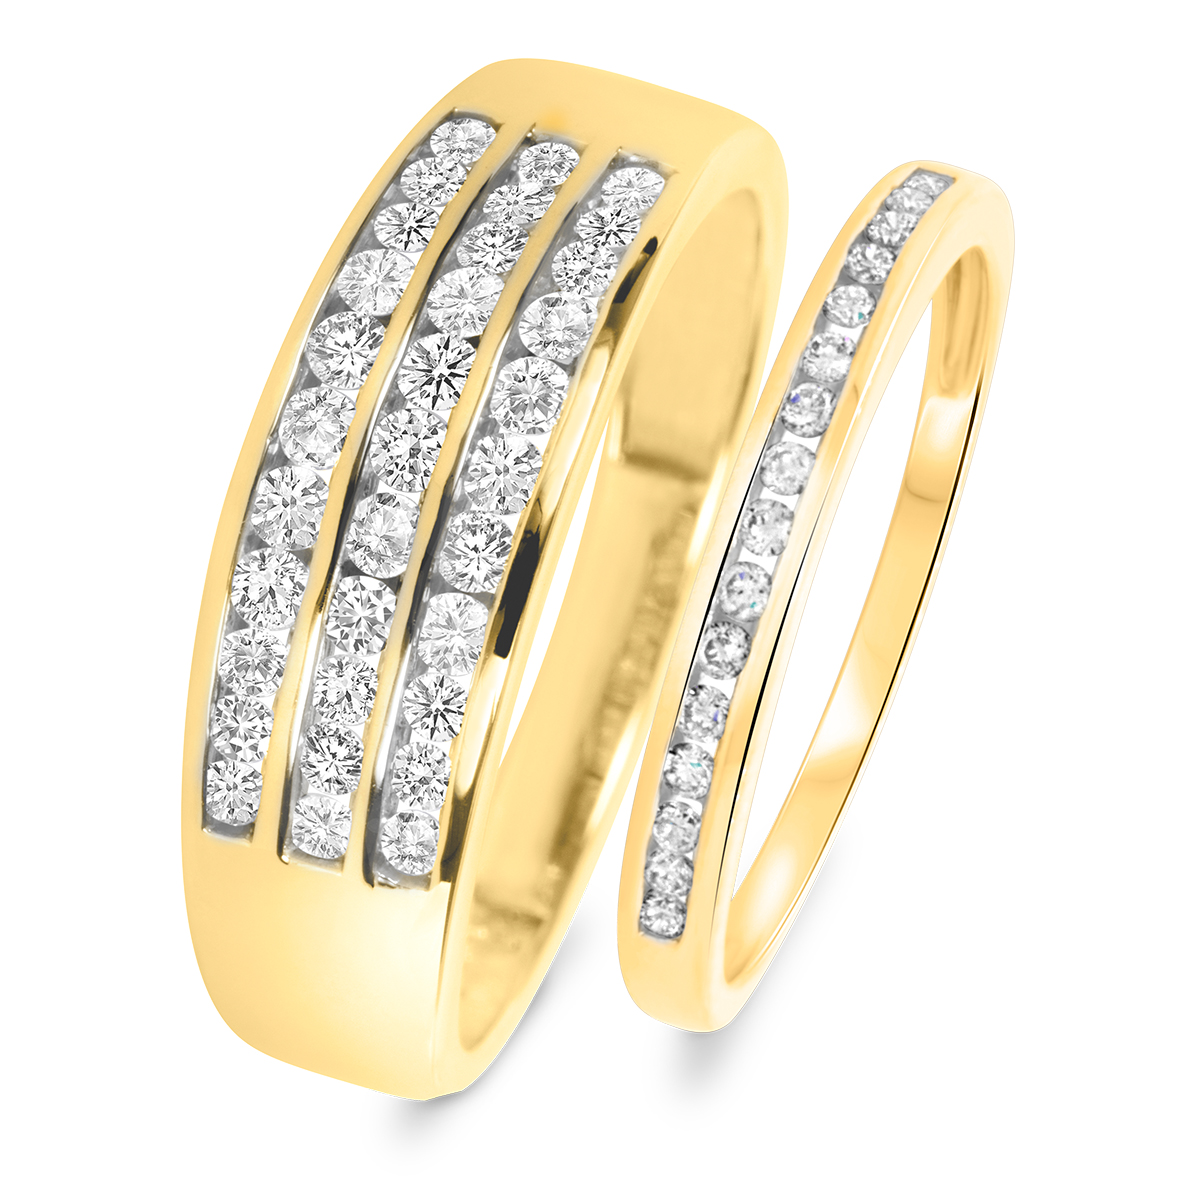 3/4 Carat T.W. Round Cut Diamond His and Hers Wedding Band Set 14K Yellow Gold